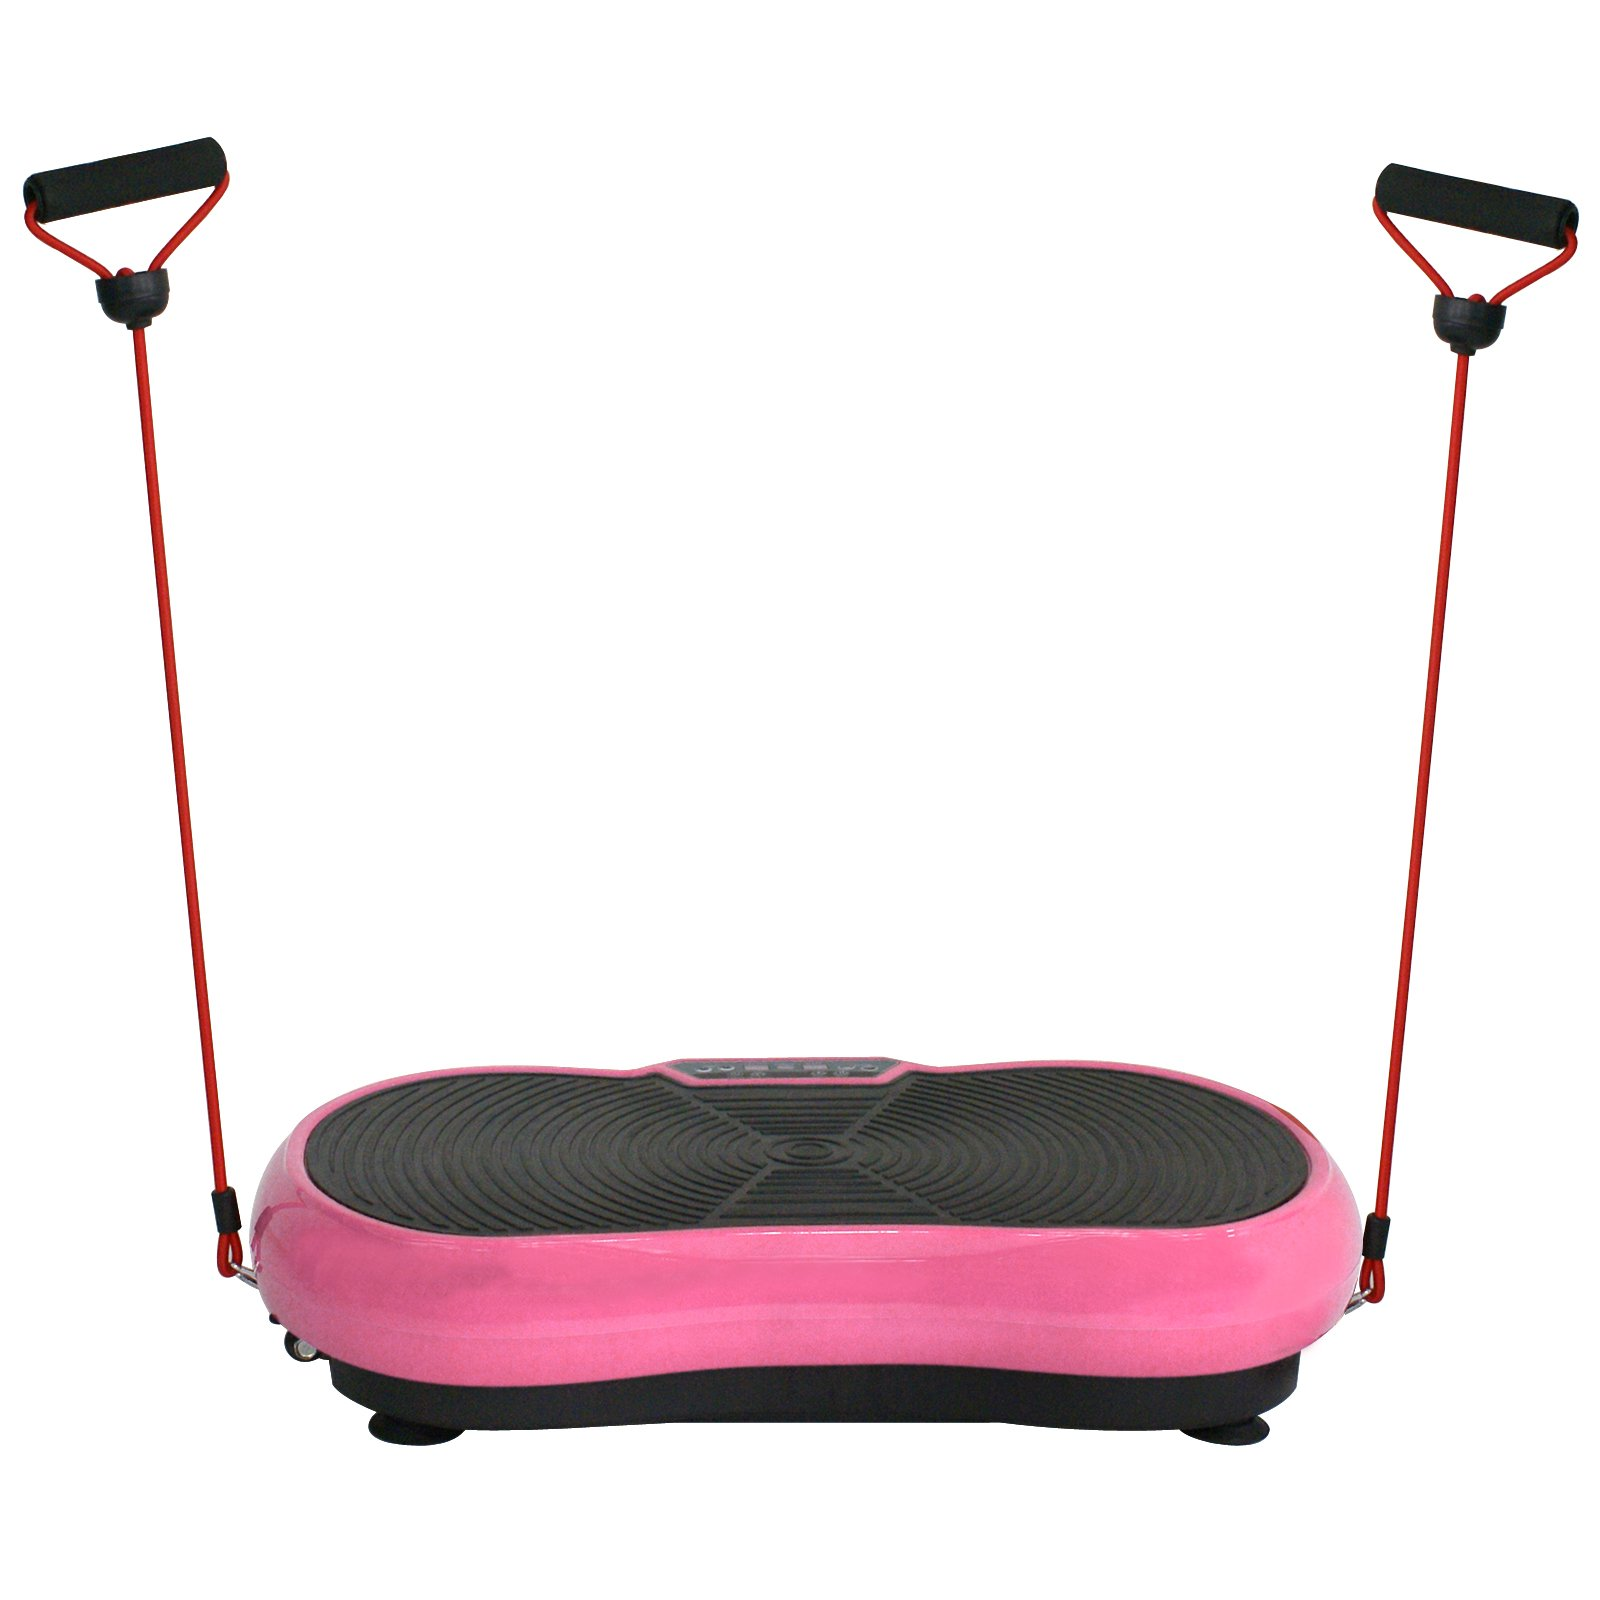 SUPER DEAL Crazy Work Out Fit Full Body Vibration Platform Massage Machine Fitness W/Bluetooth, Pink by SUPER DEAL (Image #8)